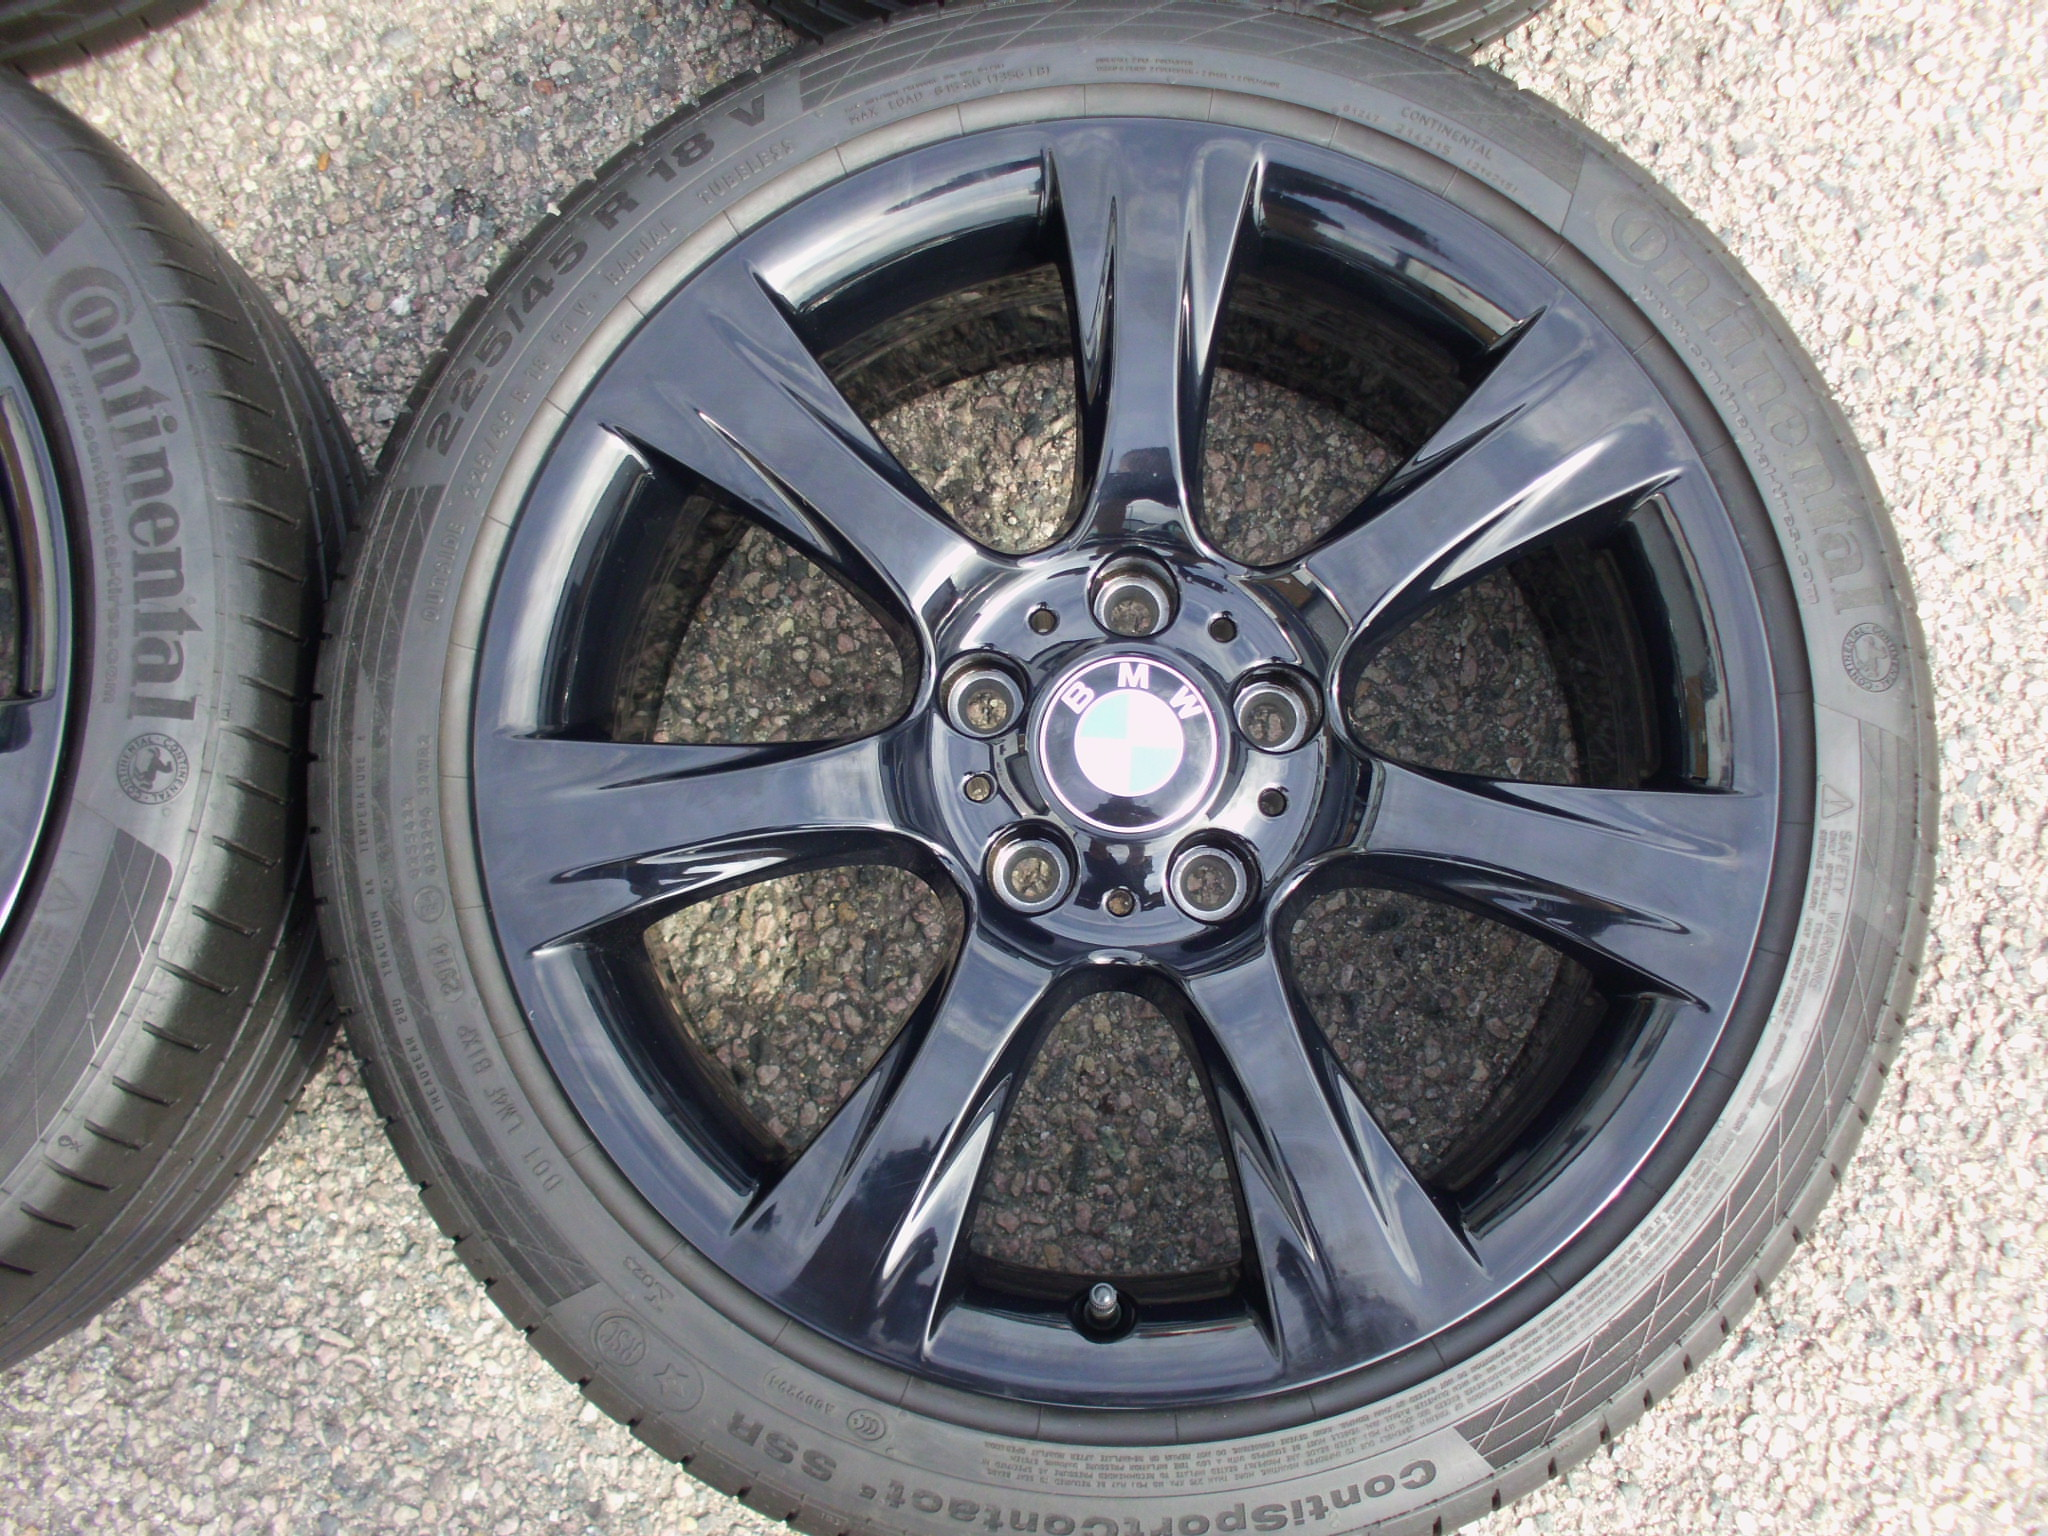 "USED 18"" GENUINE STYLE 396 7 SPOKE ALLOY WHEELS, FULLY REFURBED IN GLOSS BLACK, INC GOOD CONTINENTAL RUNFLAT TYRES"